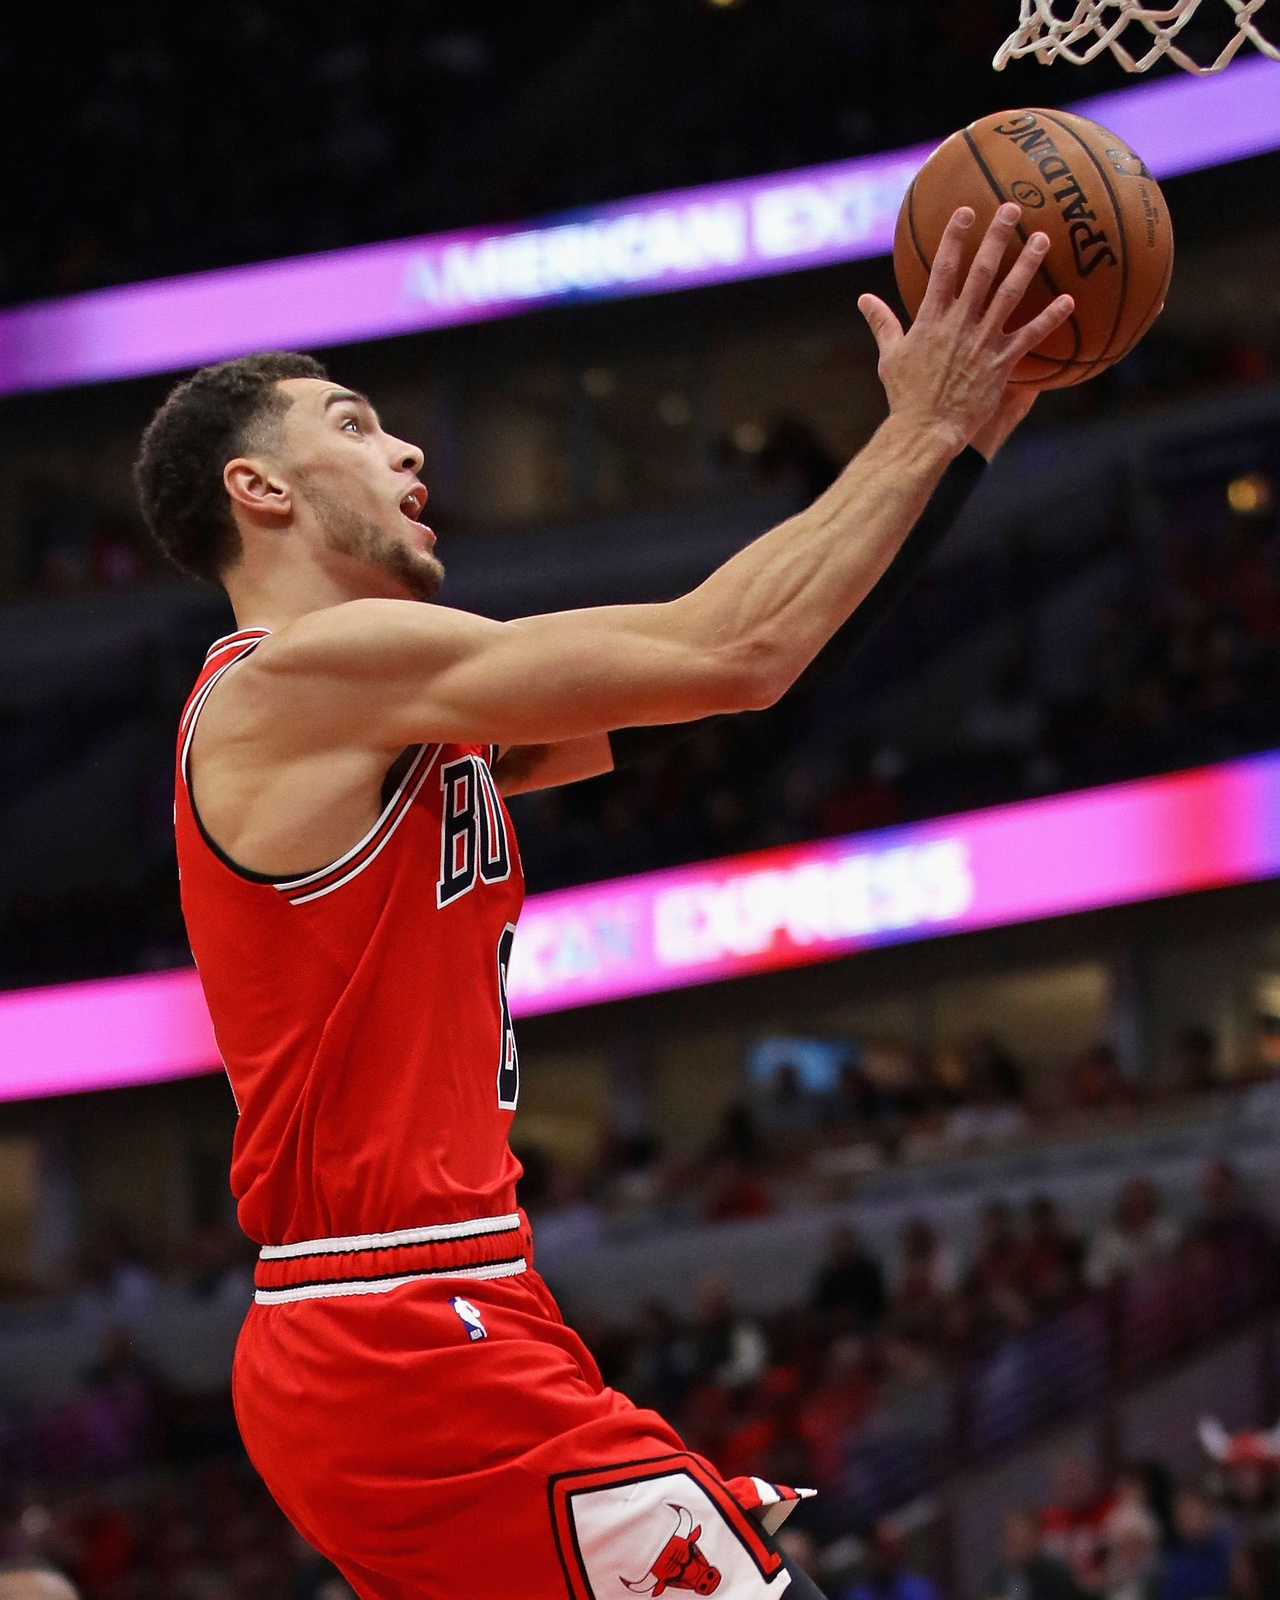 Zach LaVine #8 of the Chicago Bulls drives to the basket on his way to a game high 32 points against the Charlotte Hornets at the United Center on October 24, 2018 in Chicago, Illinois.